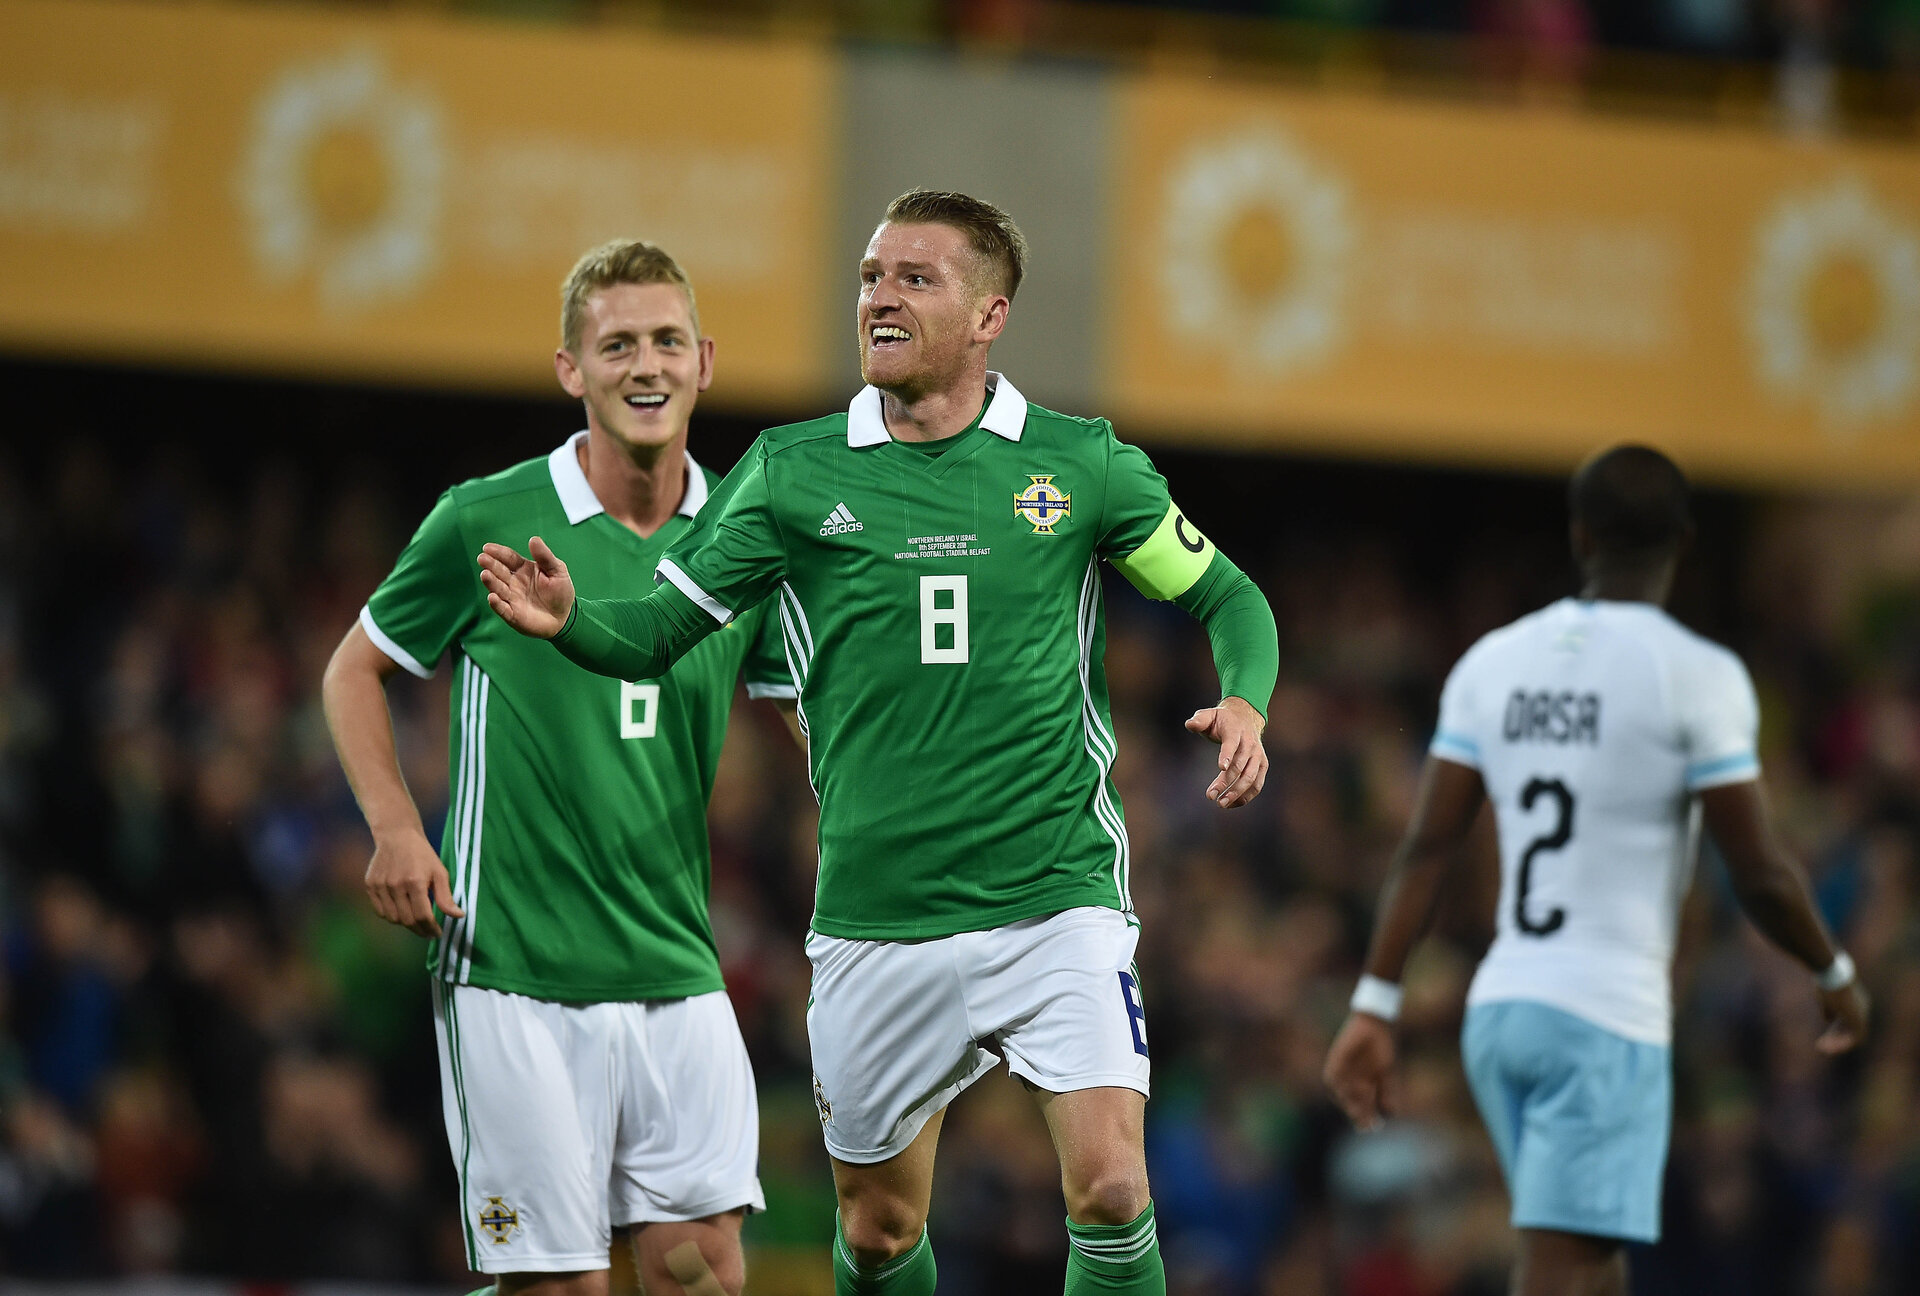 BELFAST, NORTHERN IRELAND - SEPTEMBER 11: Steve Davis of Northern Ireland celebrates with team mates after scoring during the international friendly football match between Northern Ireland and Israel at Windsor Park on September 11, 2018 in Belfast, Northern Ireland. (Photo by Charles McQuillan/Getty Images)